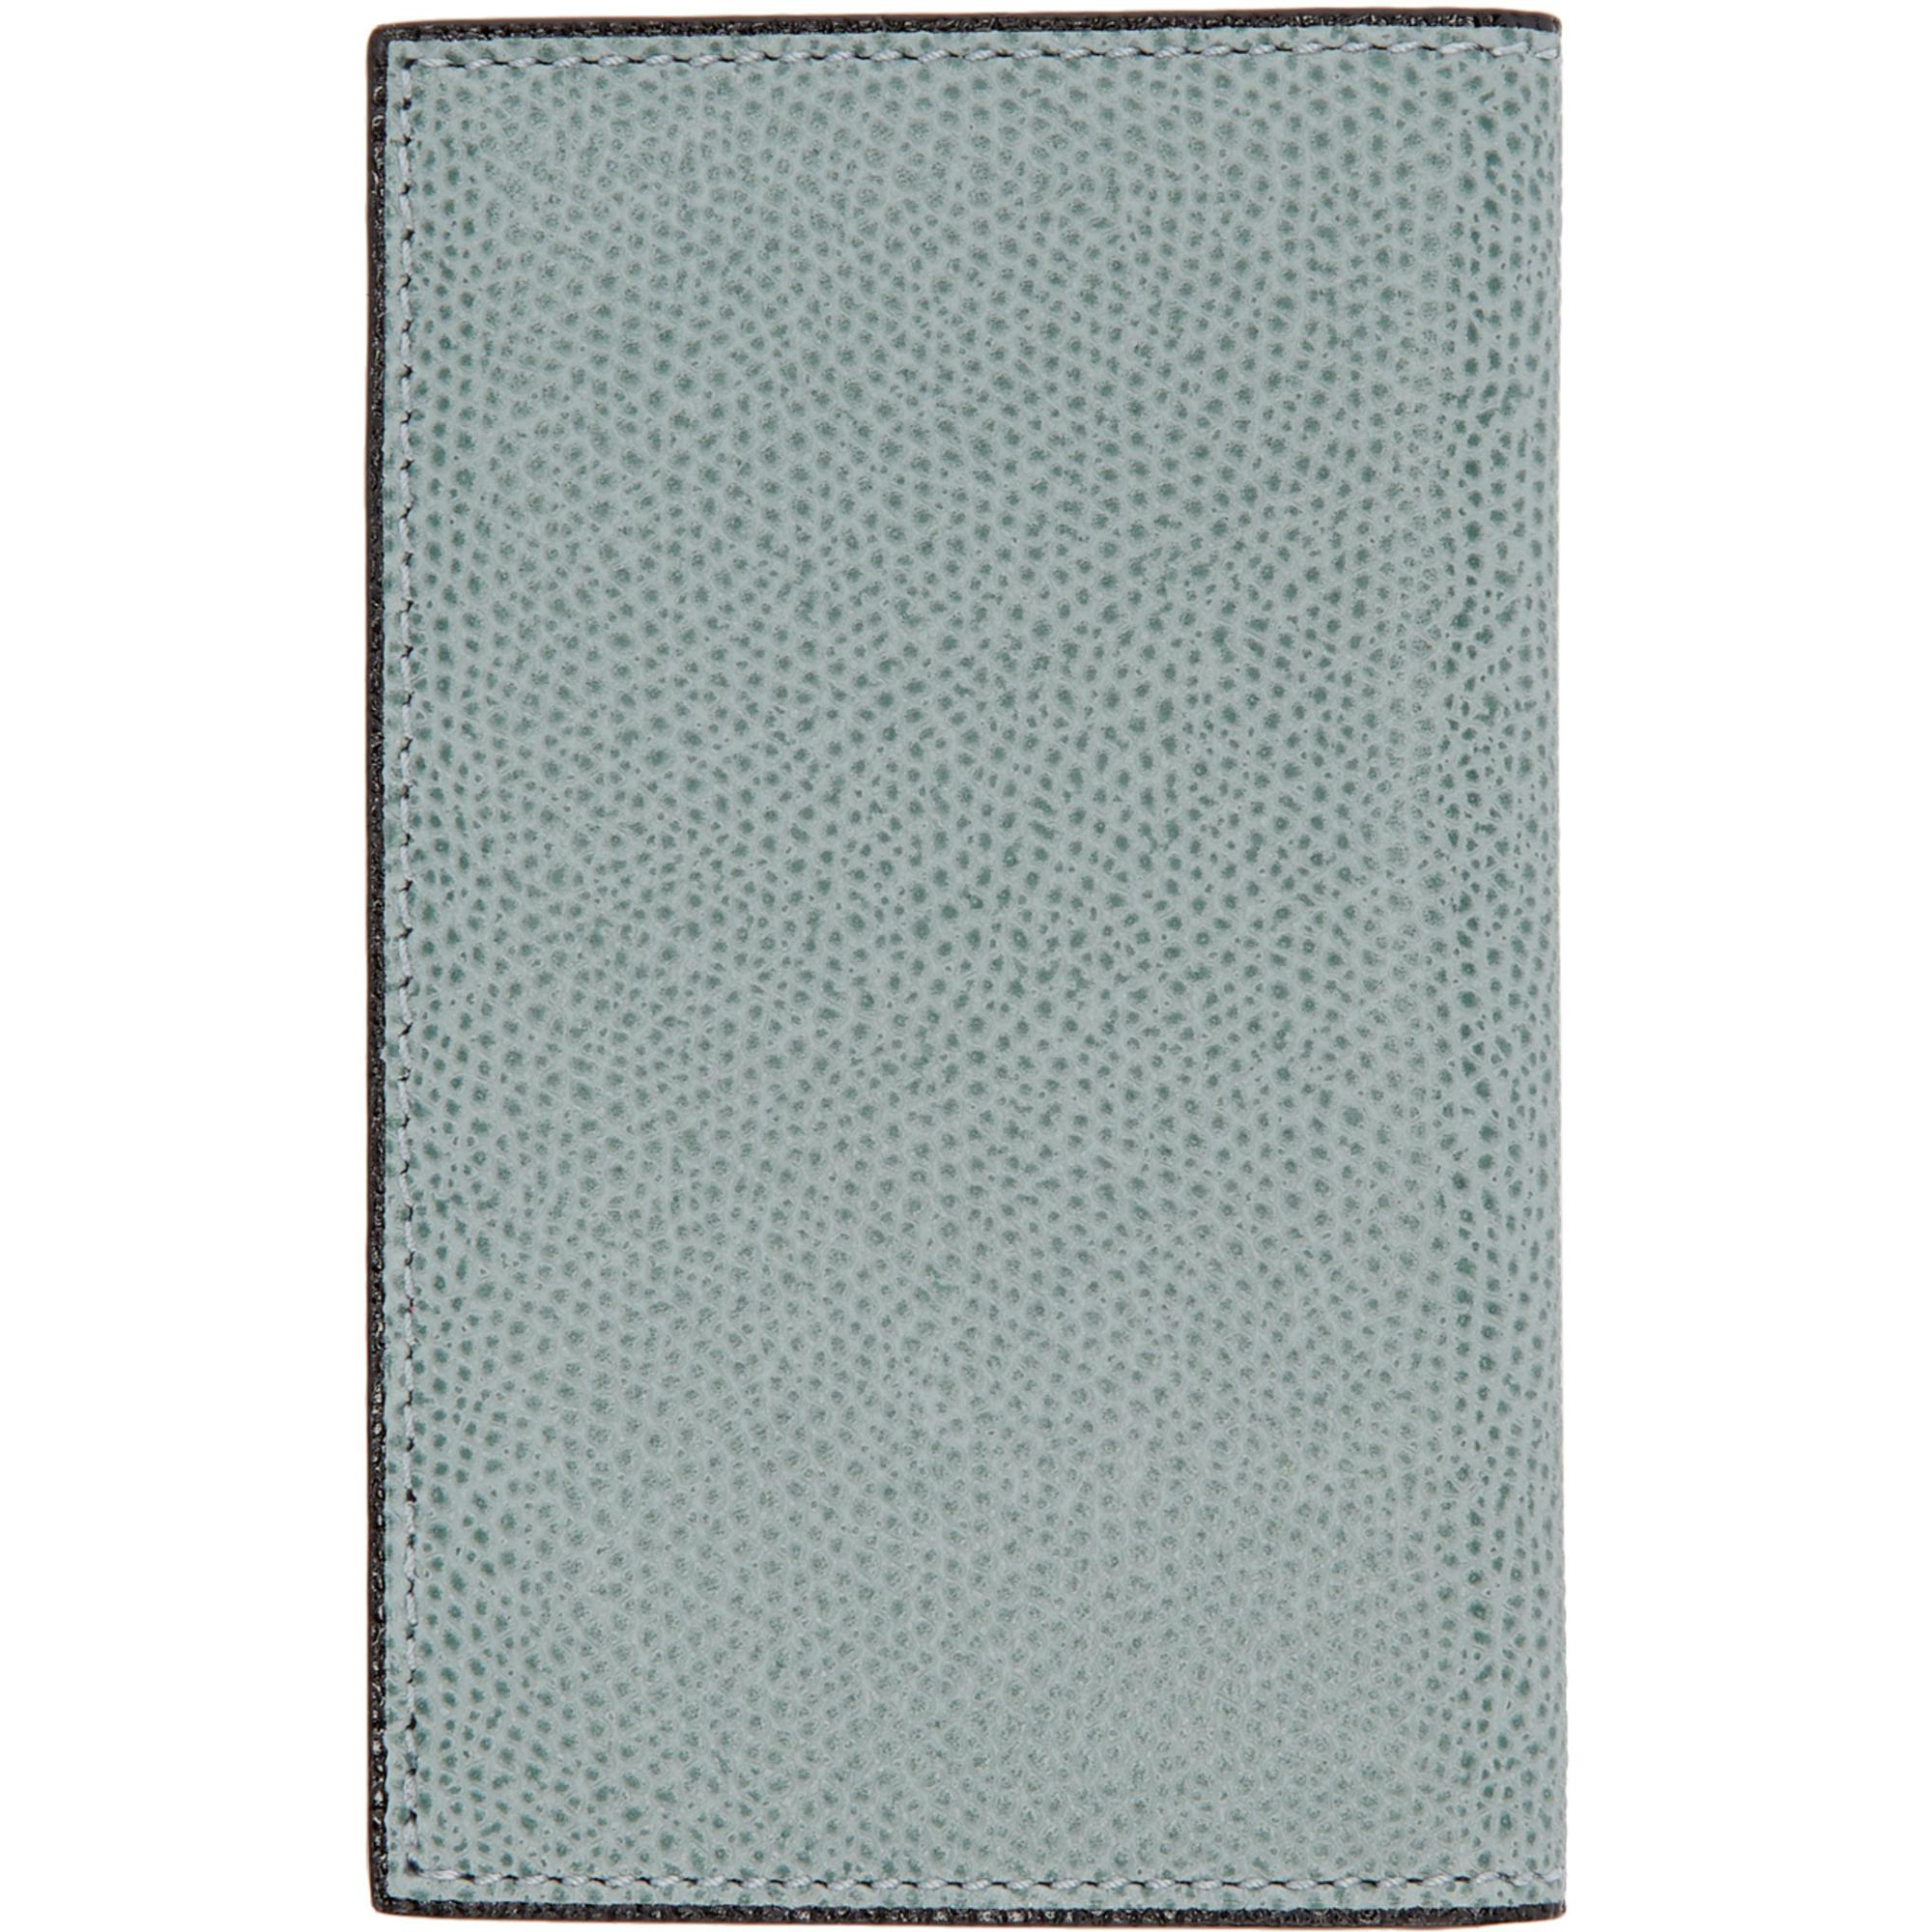 Lyst - Valextra Blue Business Card Holder in Blue